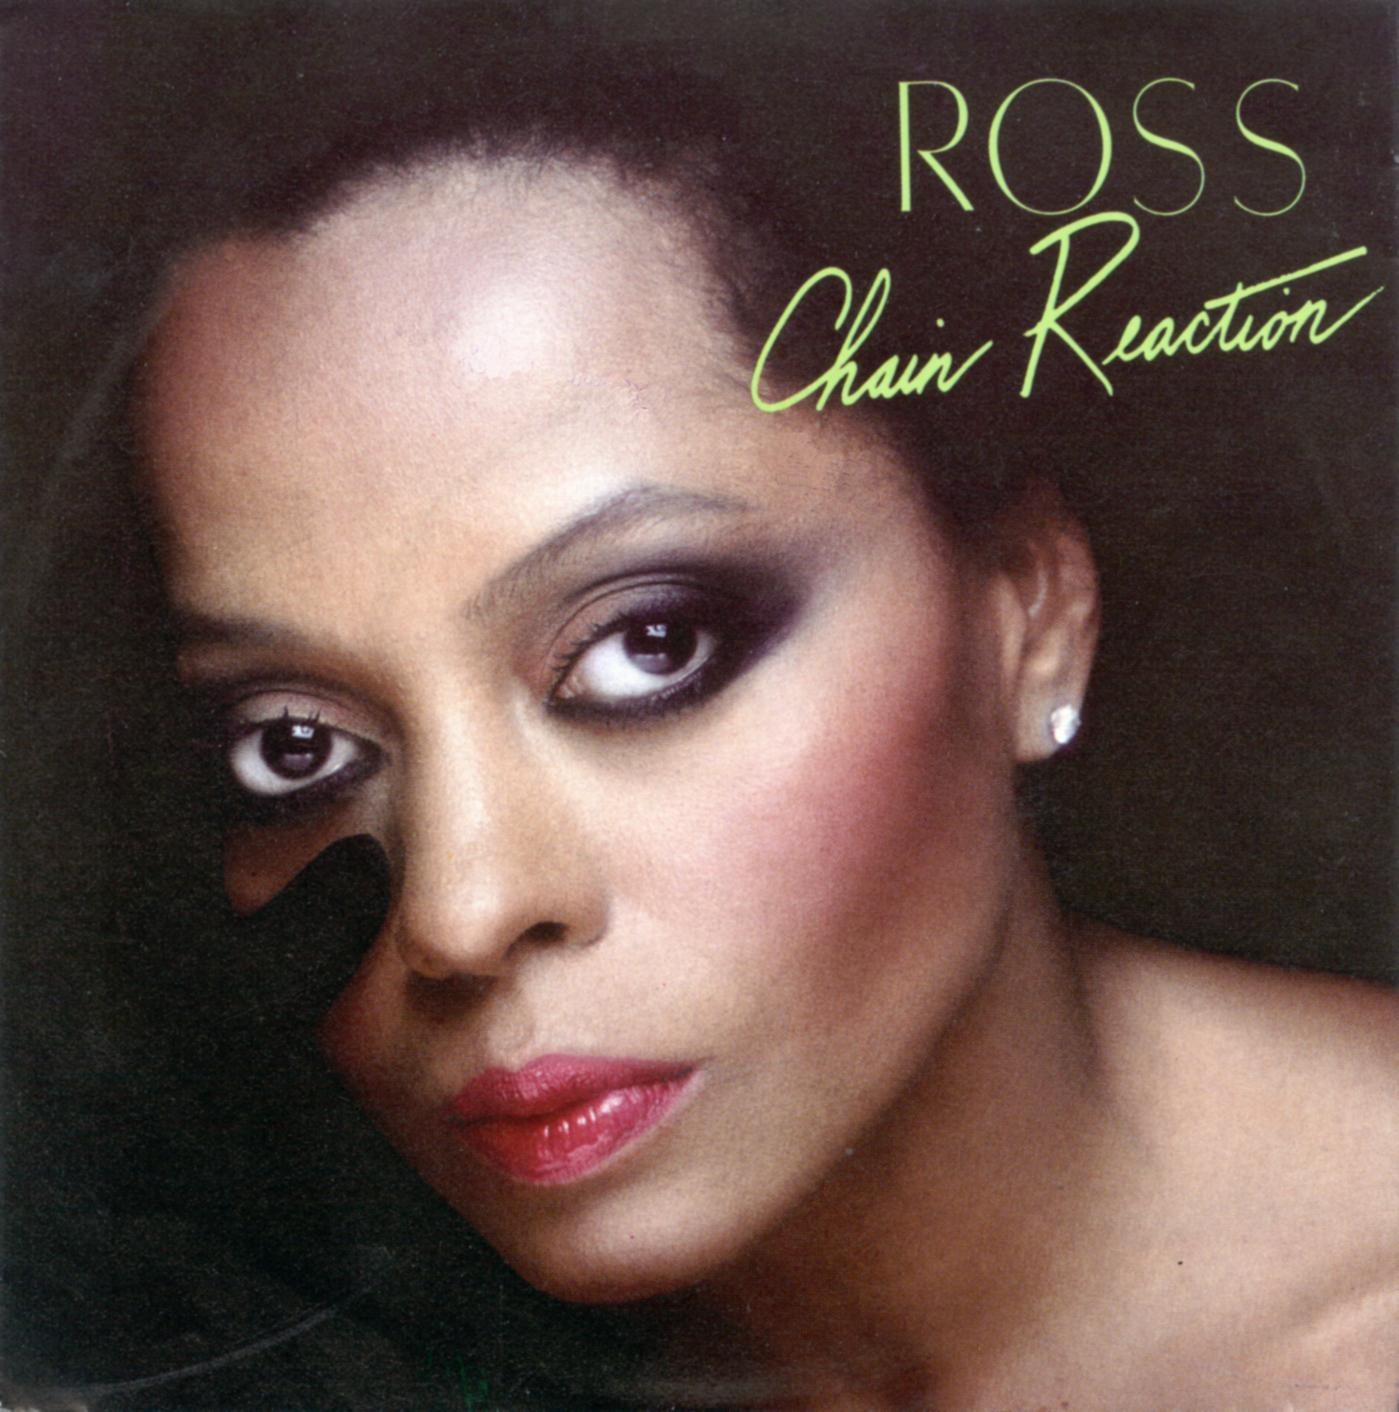 Cover: Chain reaction, Diana Ross